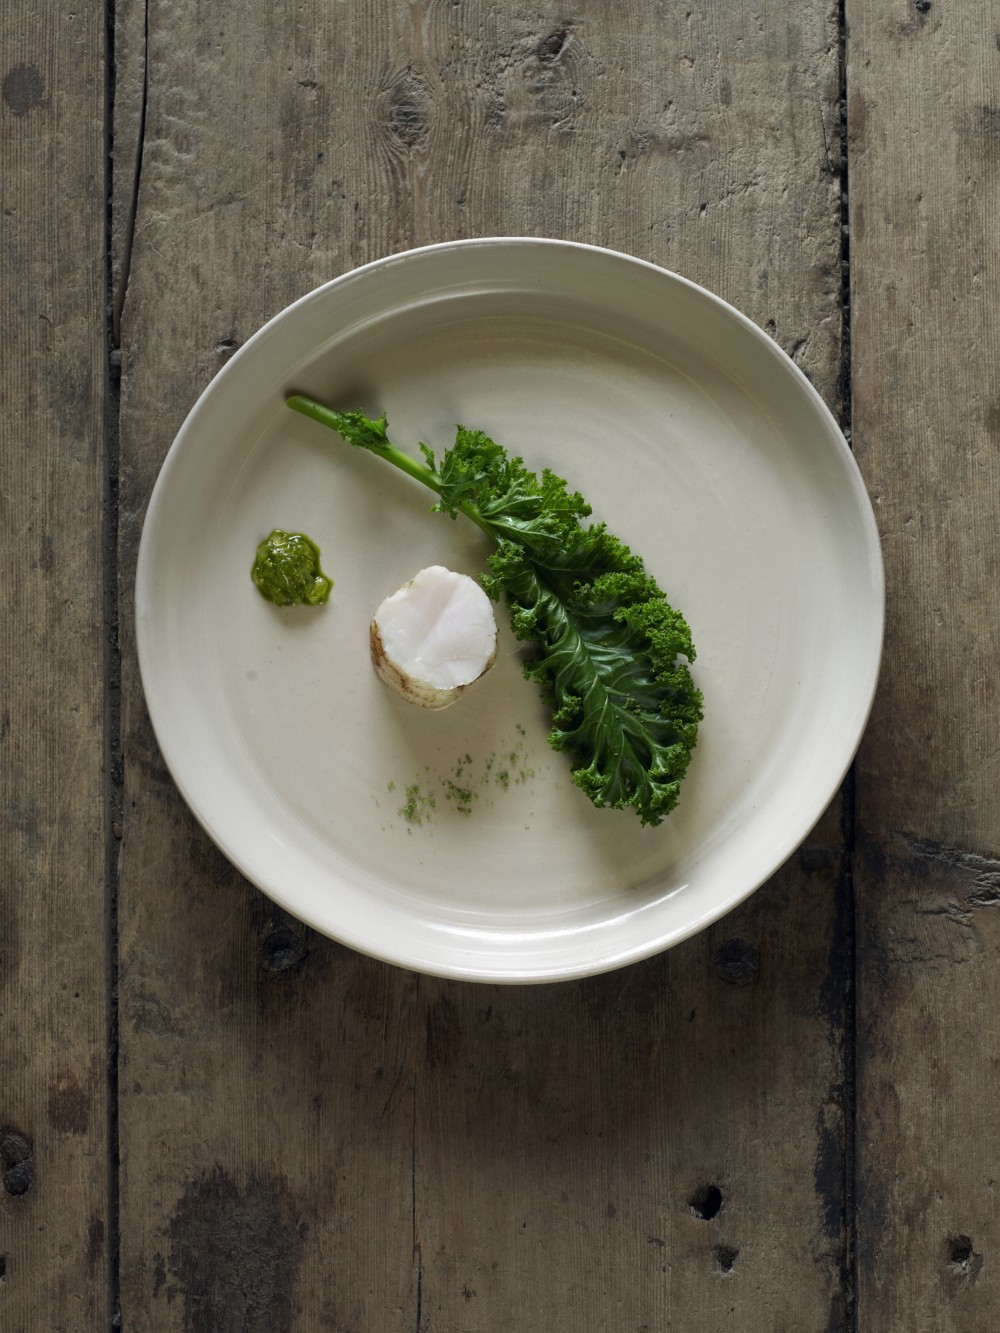 One of the twenty five courses in a meal at Faviken. Photo: Fäviken TellusThinkTank.com